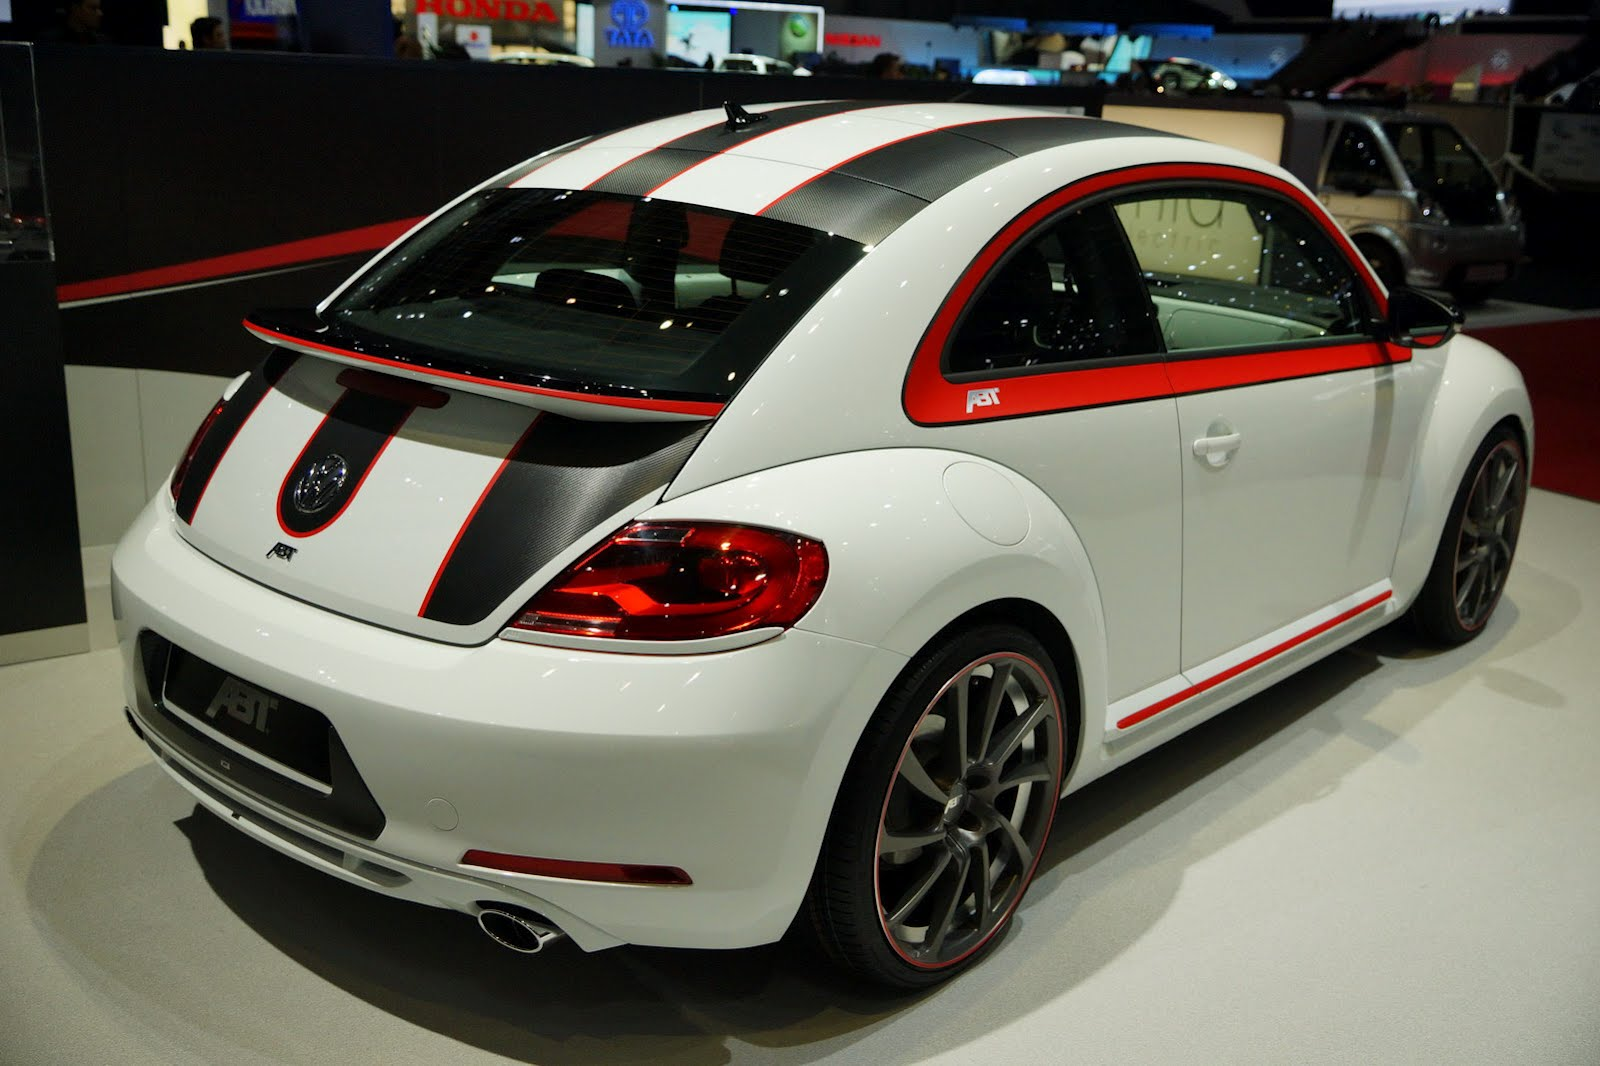 VW Beetle by ABT Sportsline